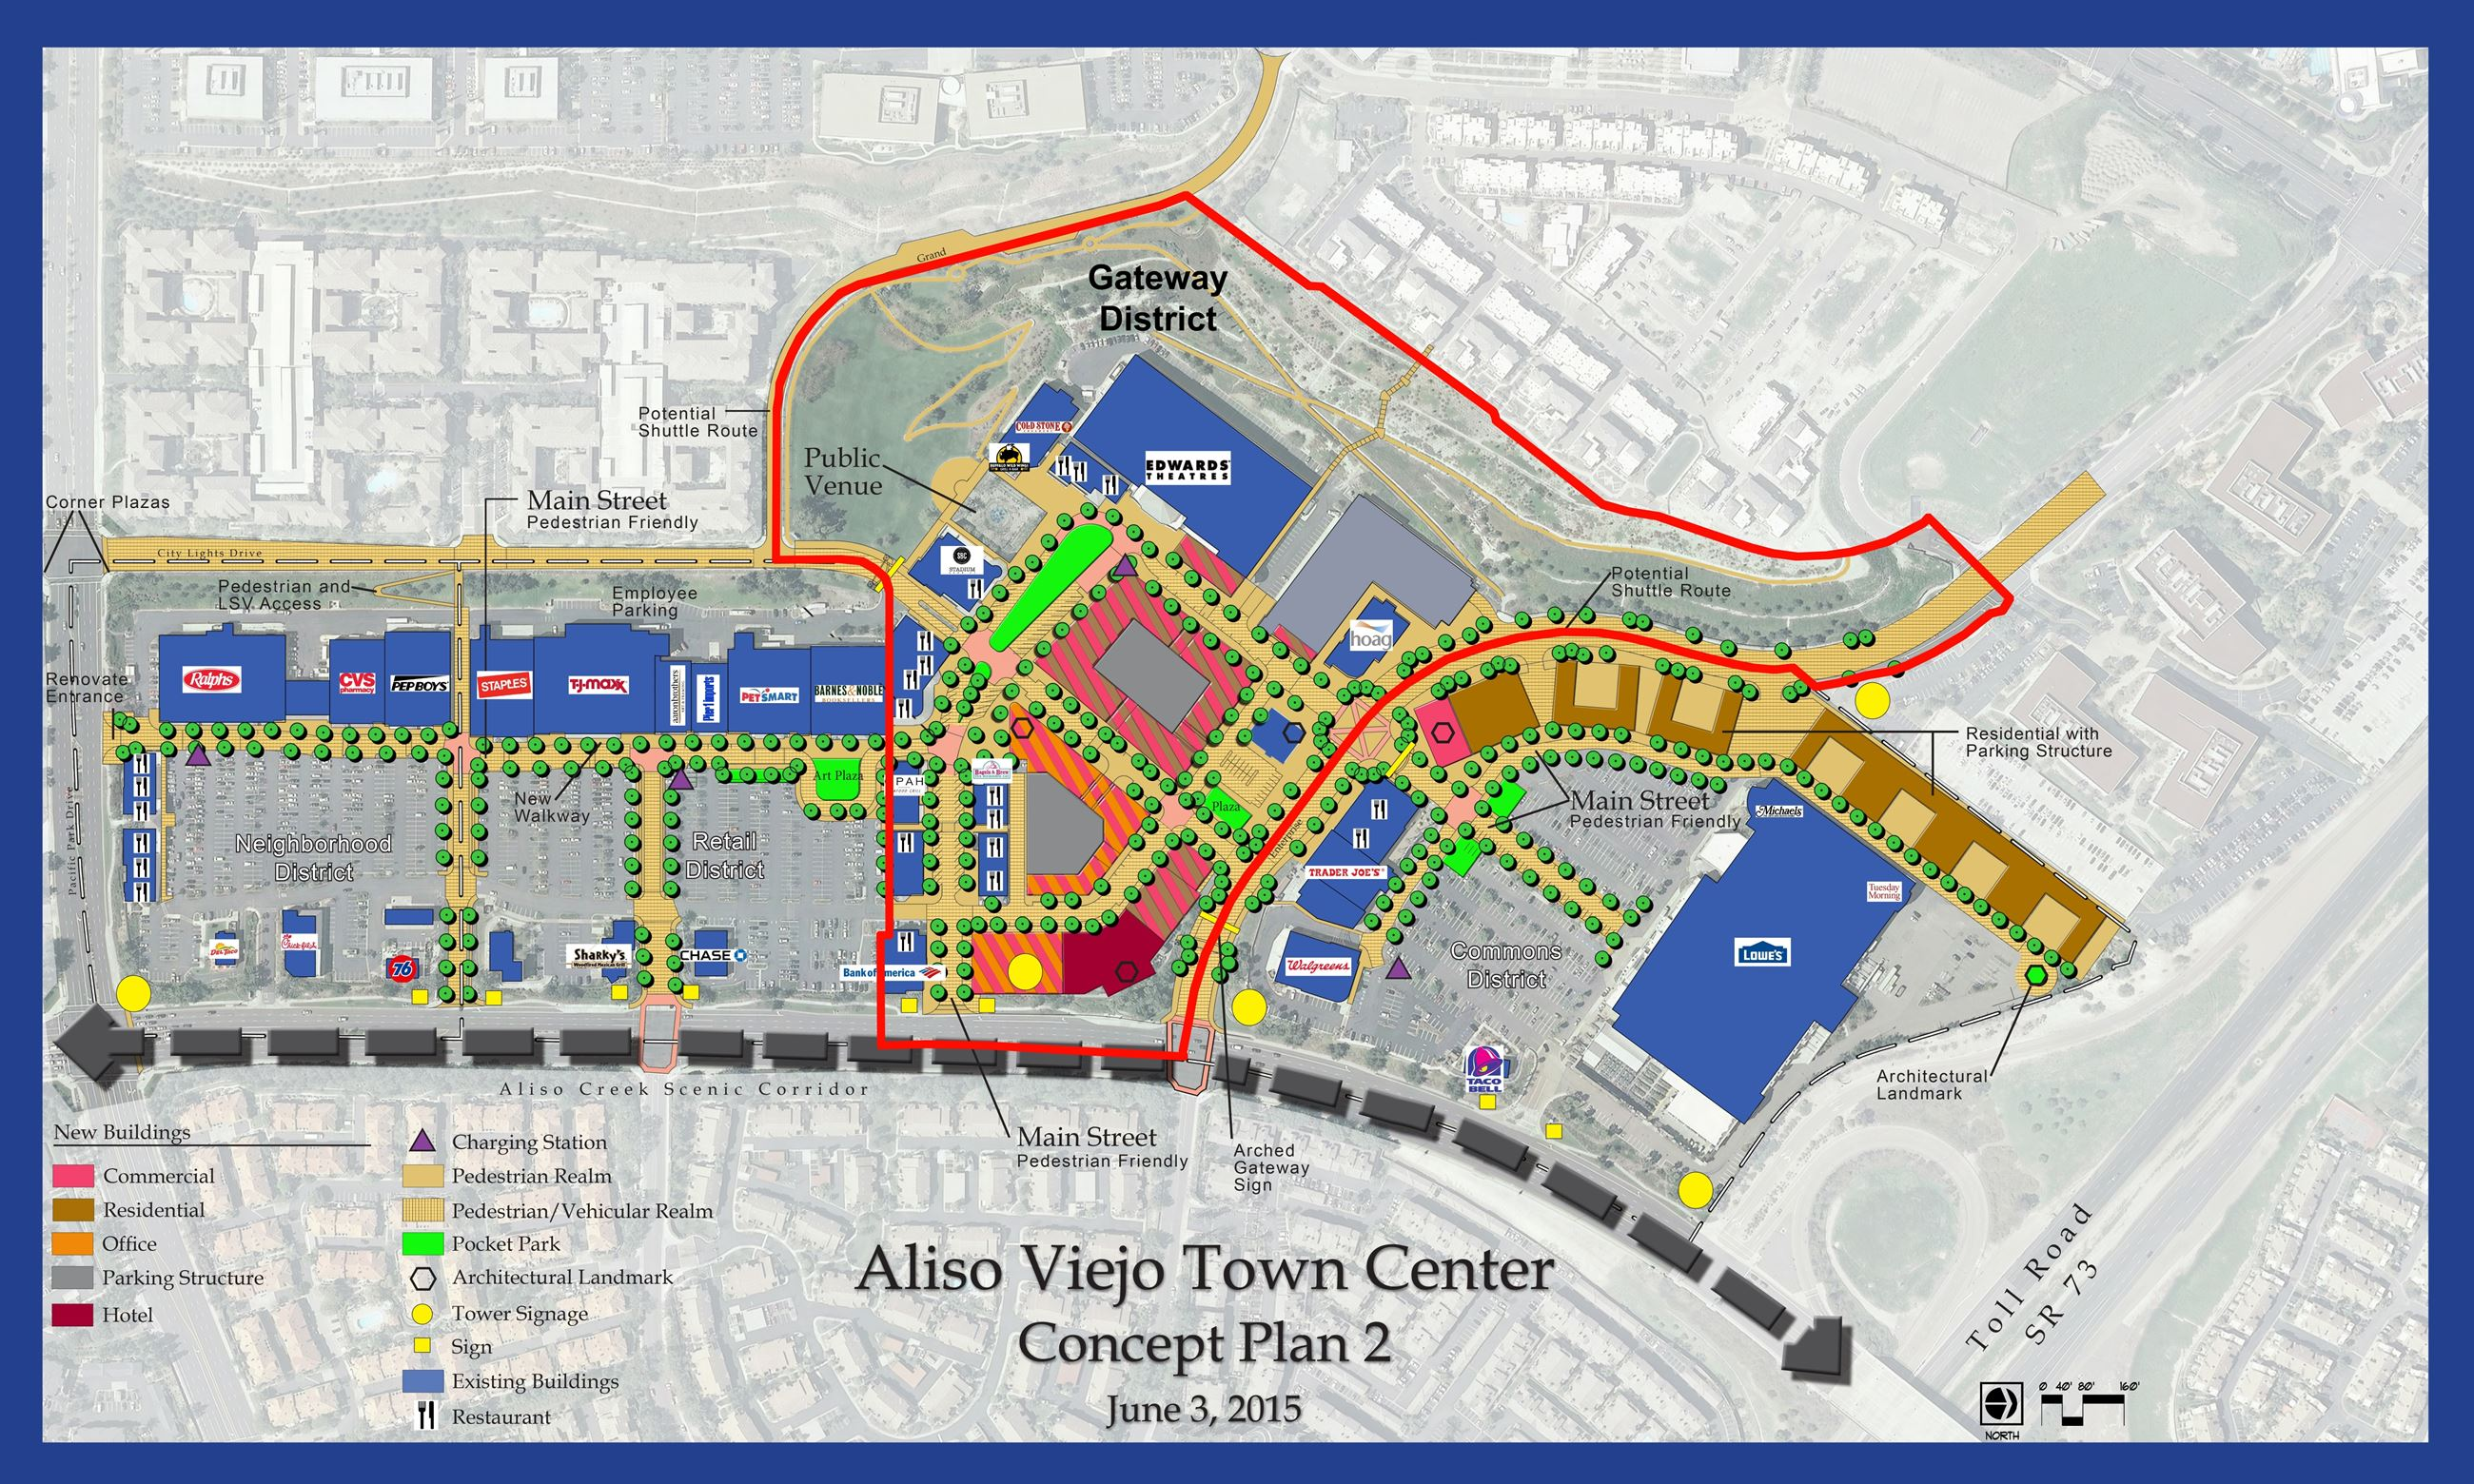 Aliso Viejo Town Center Concept Plan 2